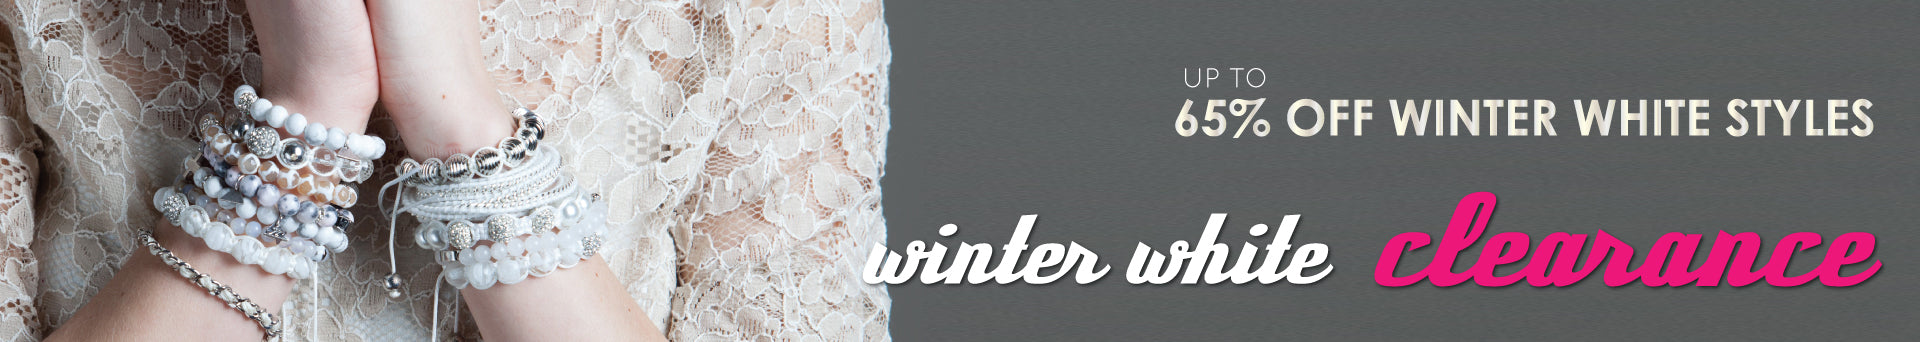 Winter White Clearance Bracelet Sale